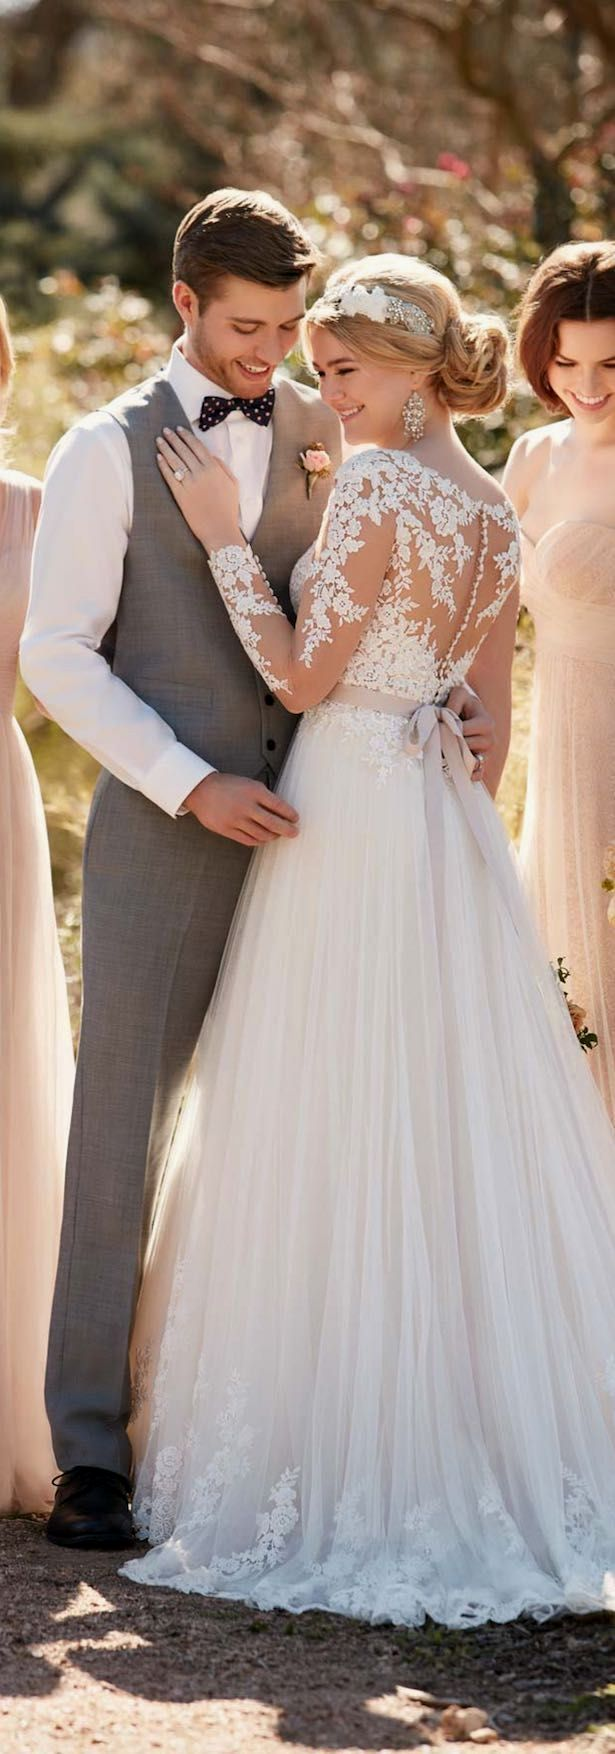 Ronald joyce lace wedding dress september 2018 Lace wedding dress Ignore the bridegroom for the moment lets